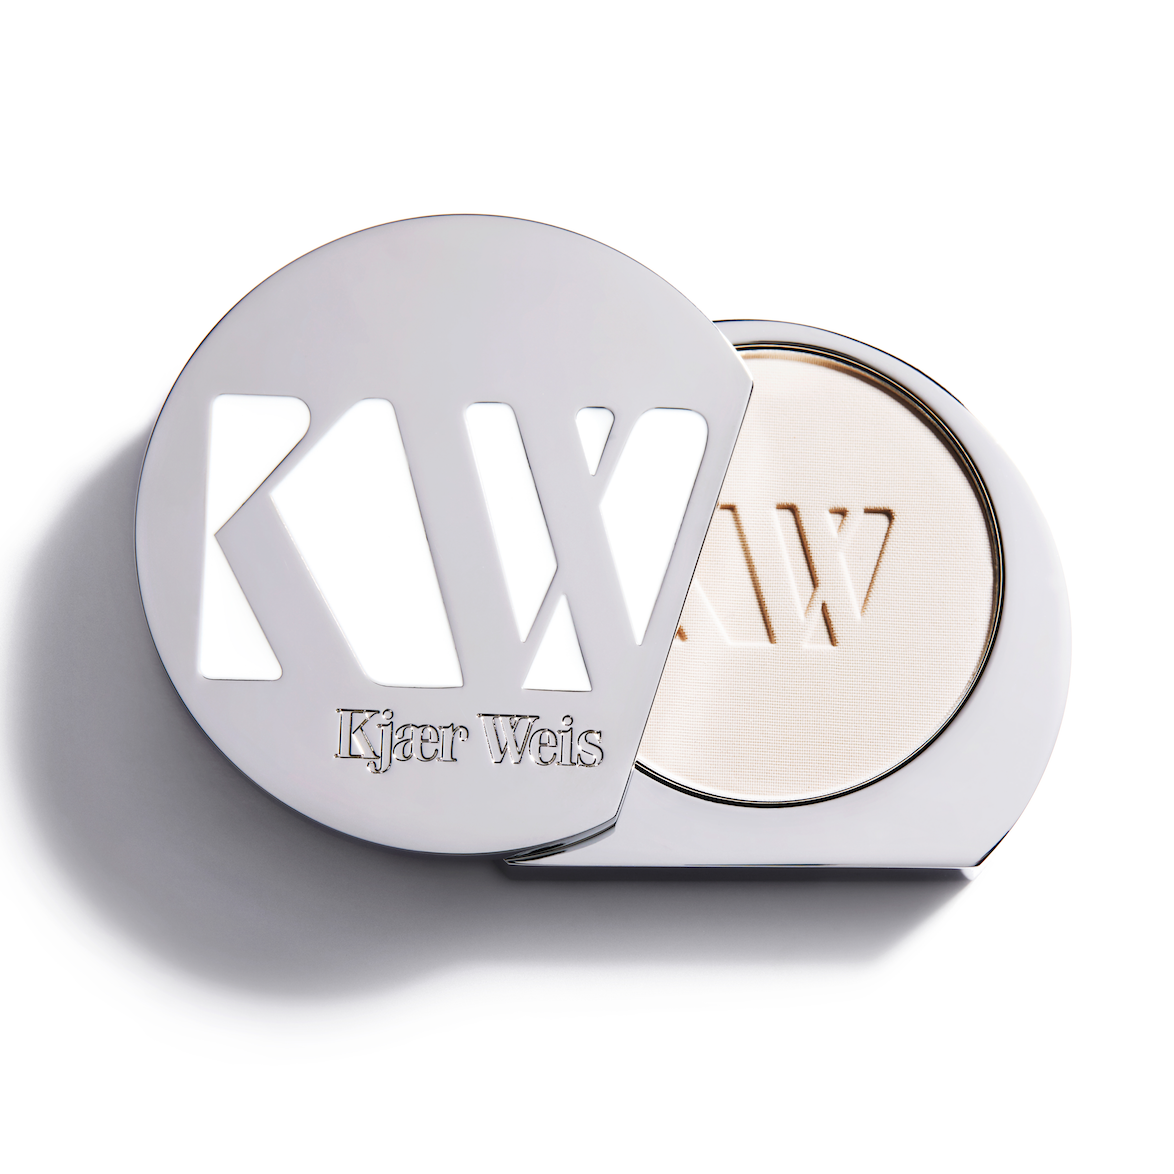 Kjaer Weis   Powder